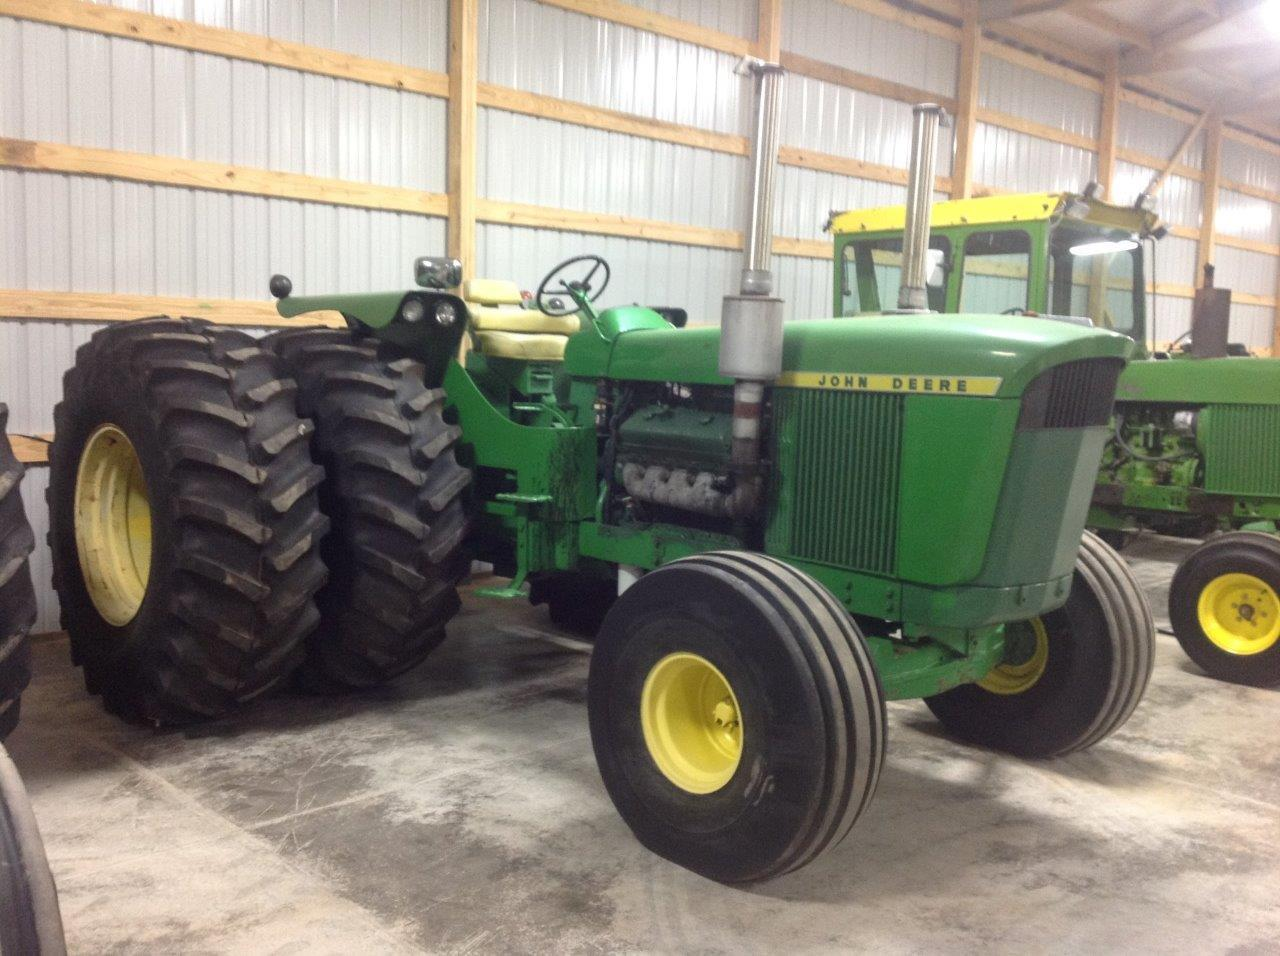 Muscle Tractor: This John Deere 5020 Got A Detroit Diesel V8 Swap And Became A Plow Pulling Bruiser